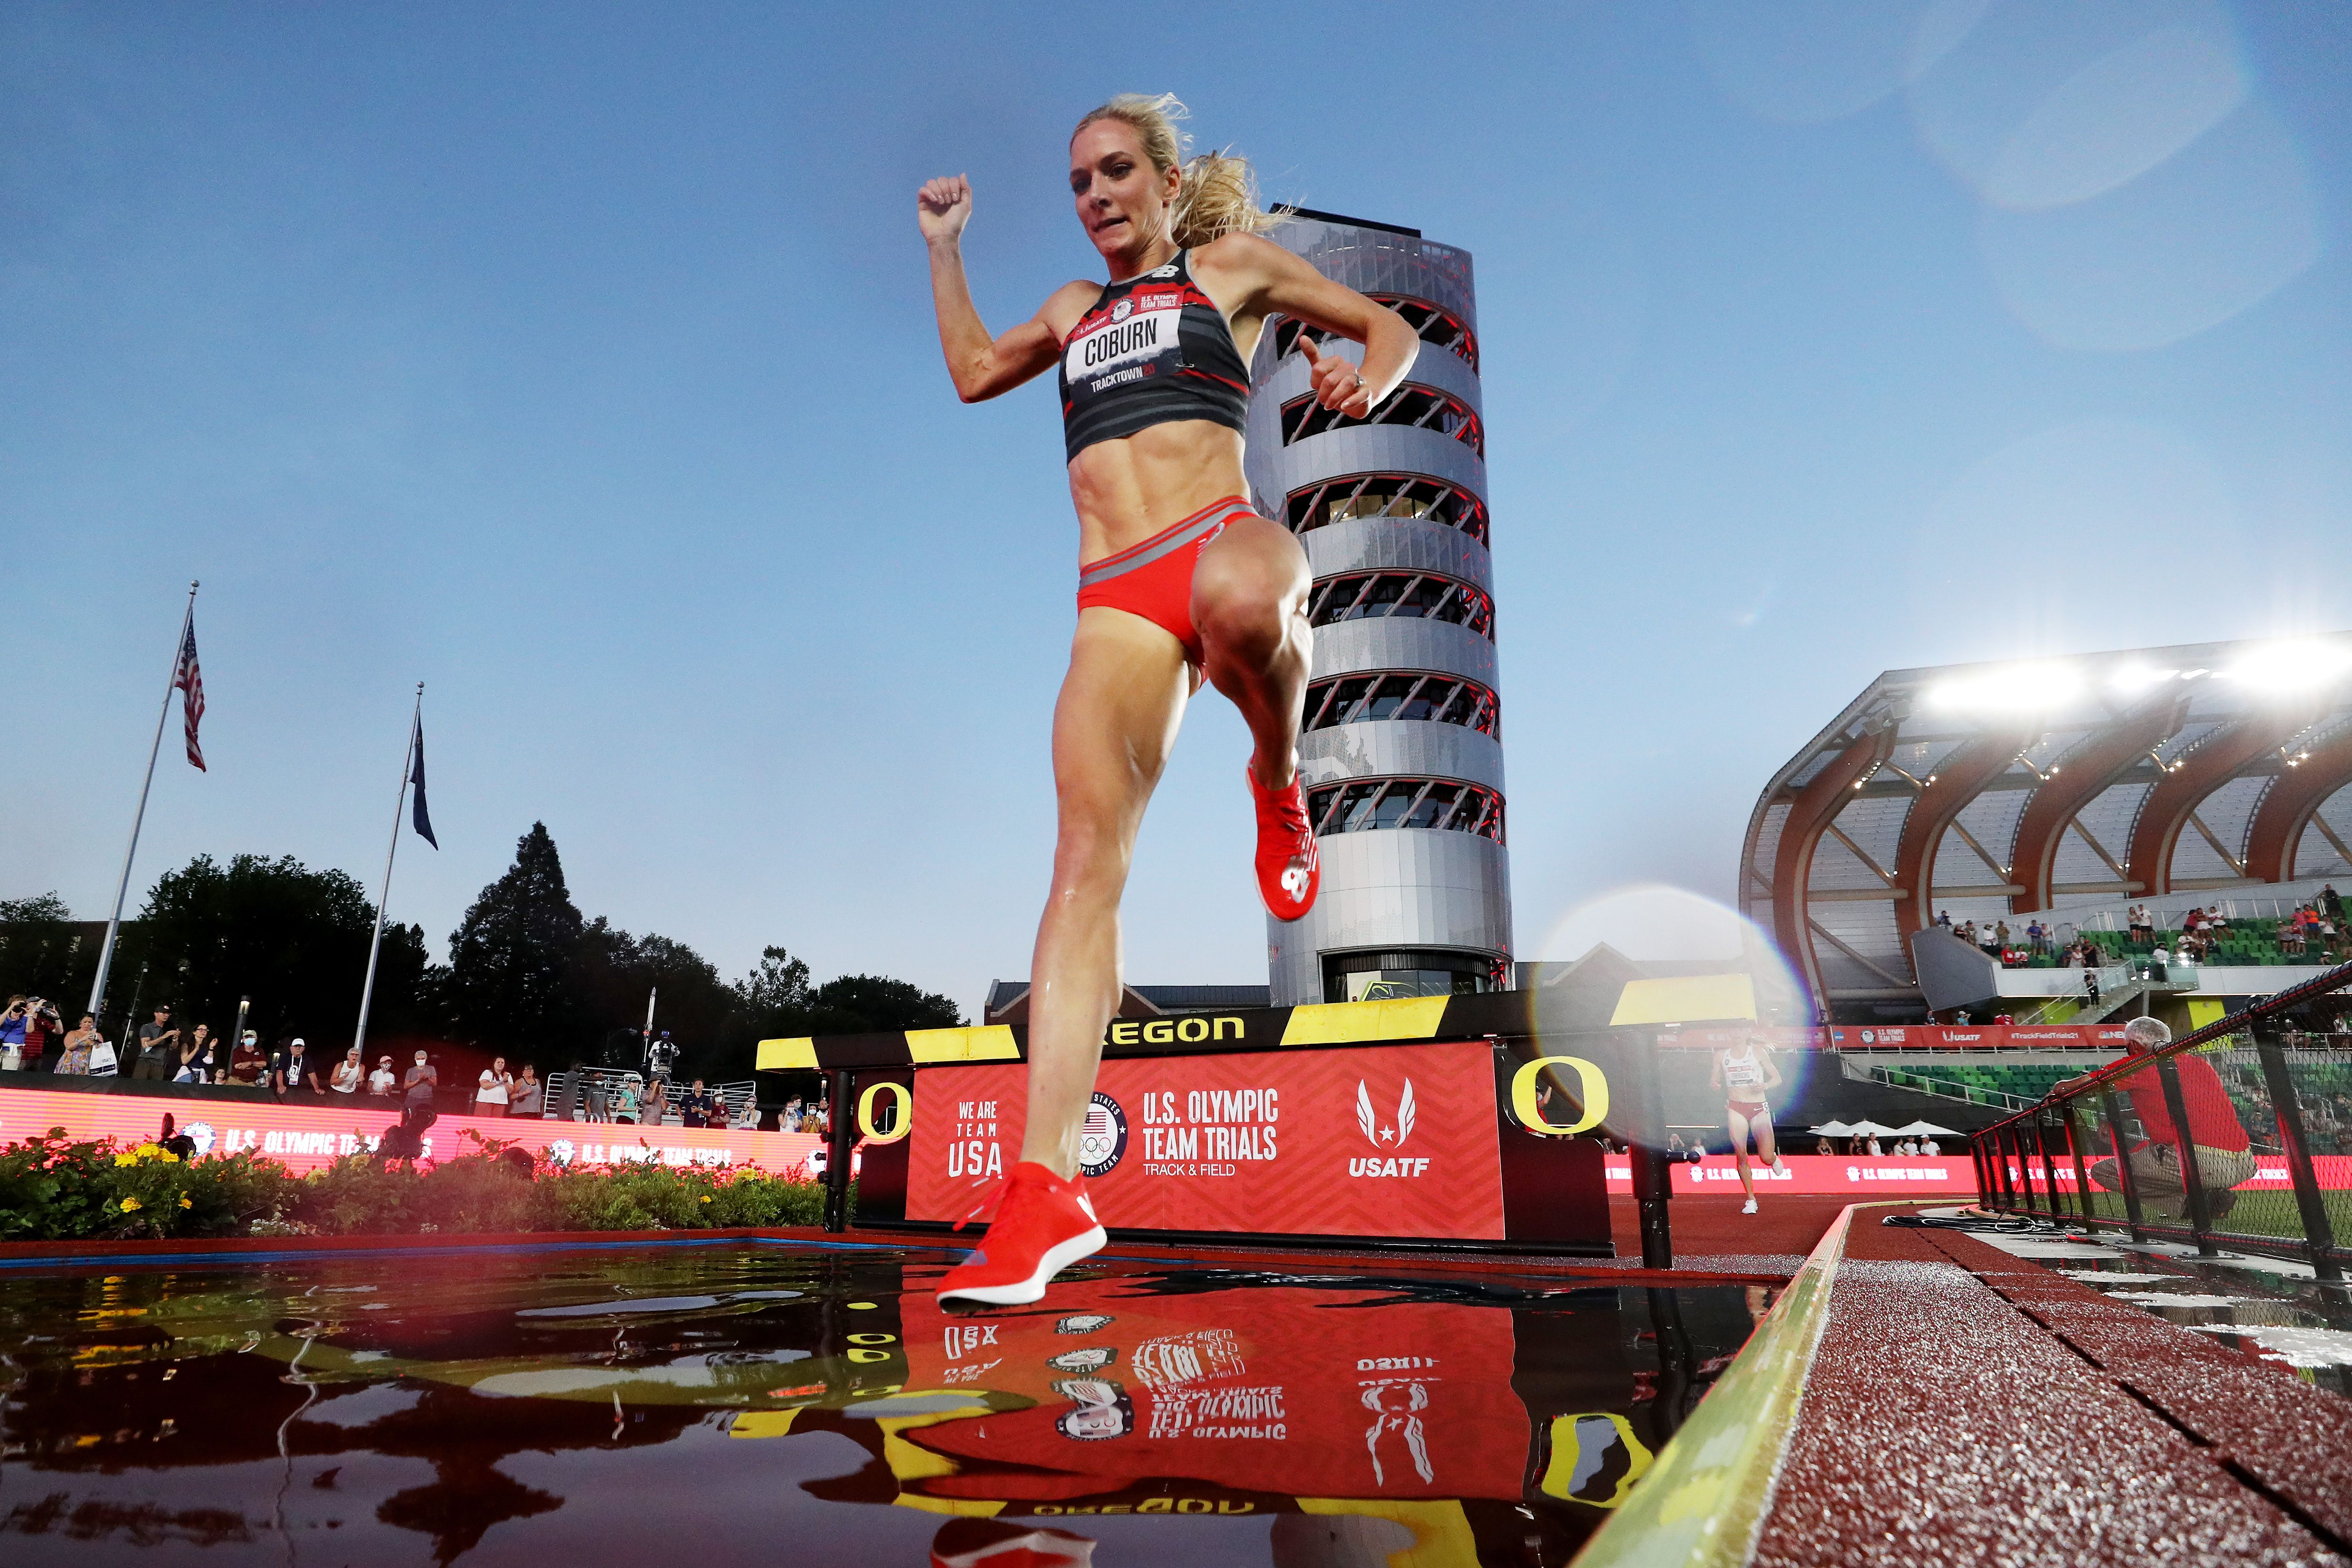 Emma Coburn in June at the U.S. Olympic trials in Oregon. Photo: Patrick Smith/Getty Images